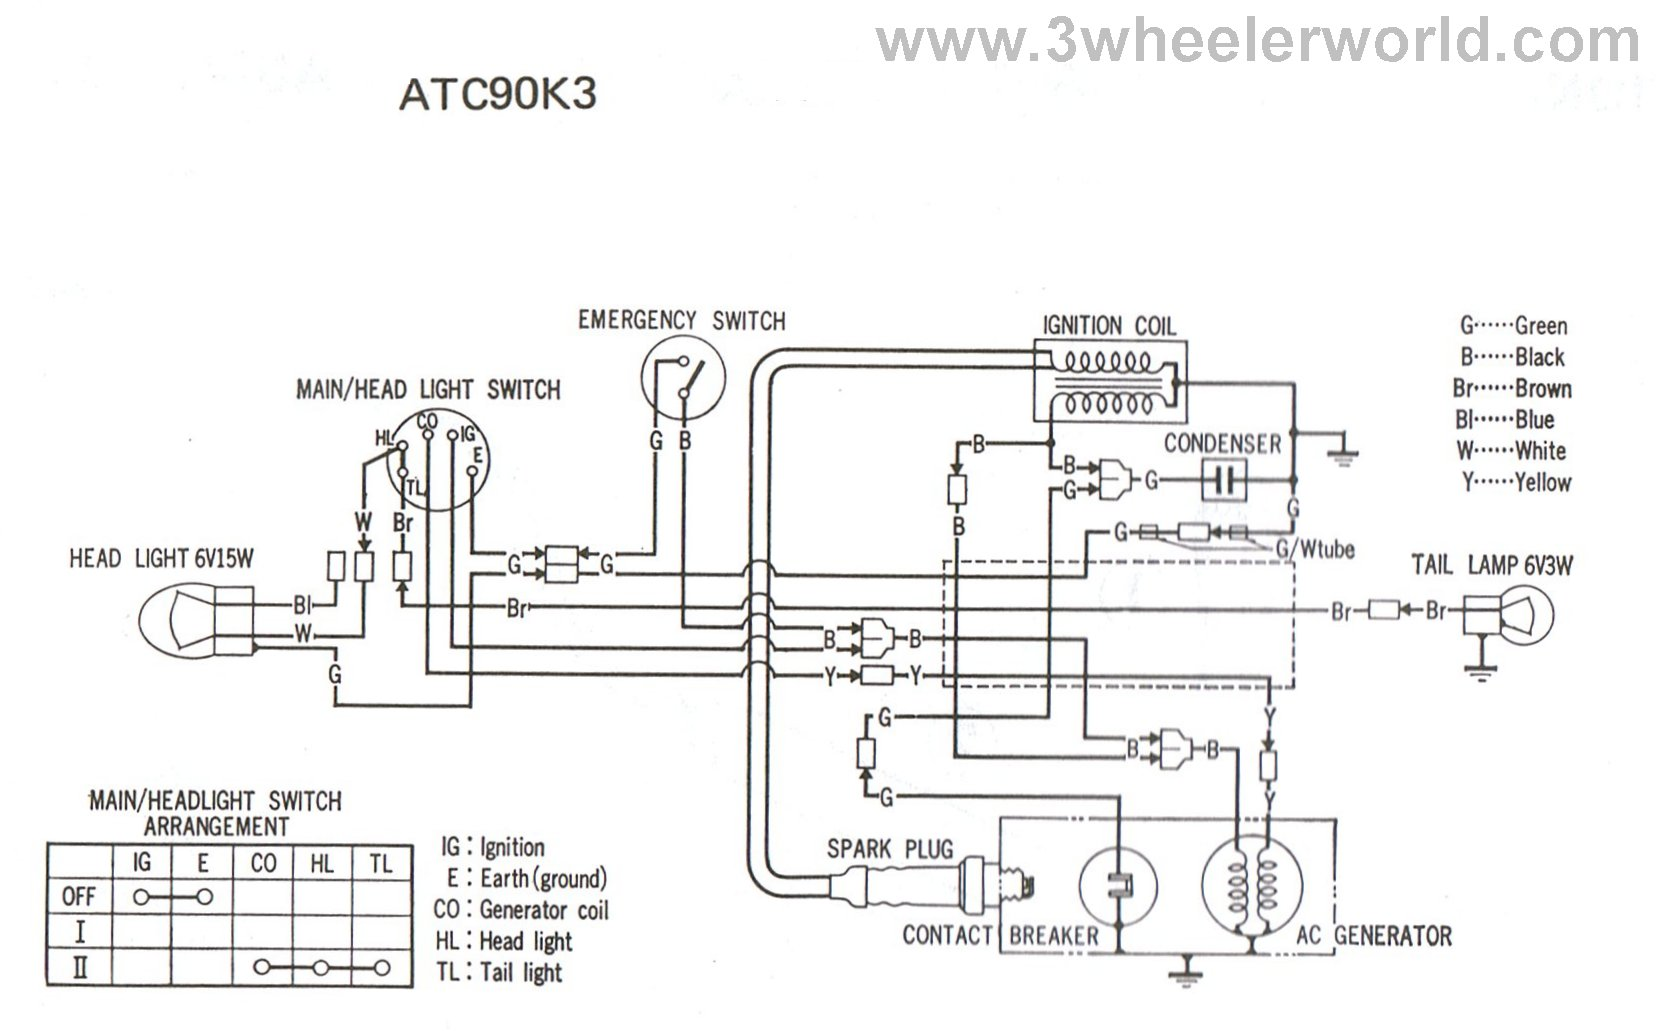 03 Polaris Sportsman 500 Winch Wiring Diagram Best Secret Ho 2003 Predator Schematic Diagrams Rh 34 Koch Foerderbandtrommeln De 2008 1999